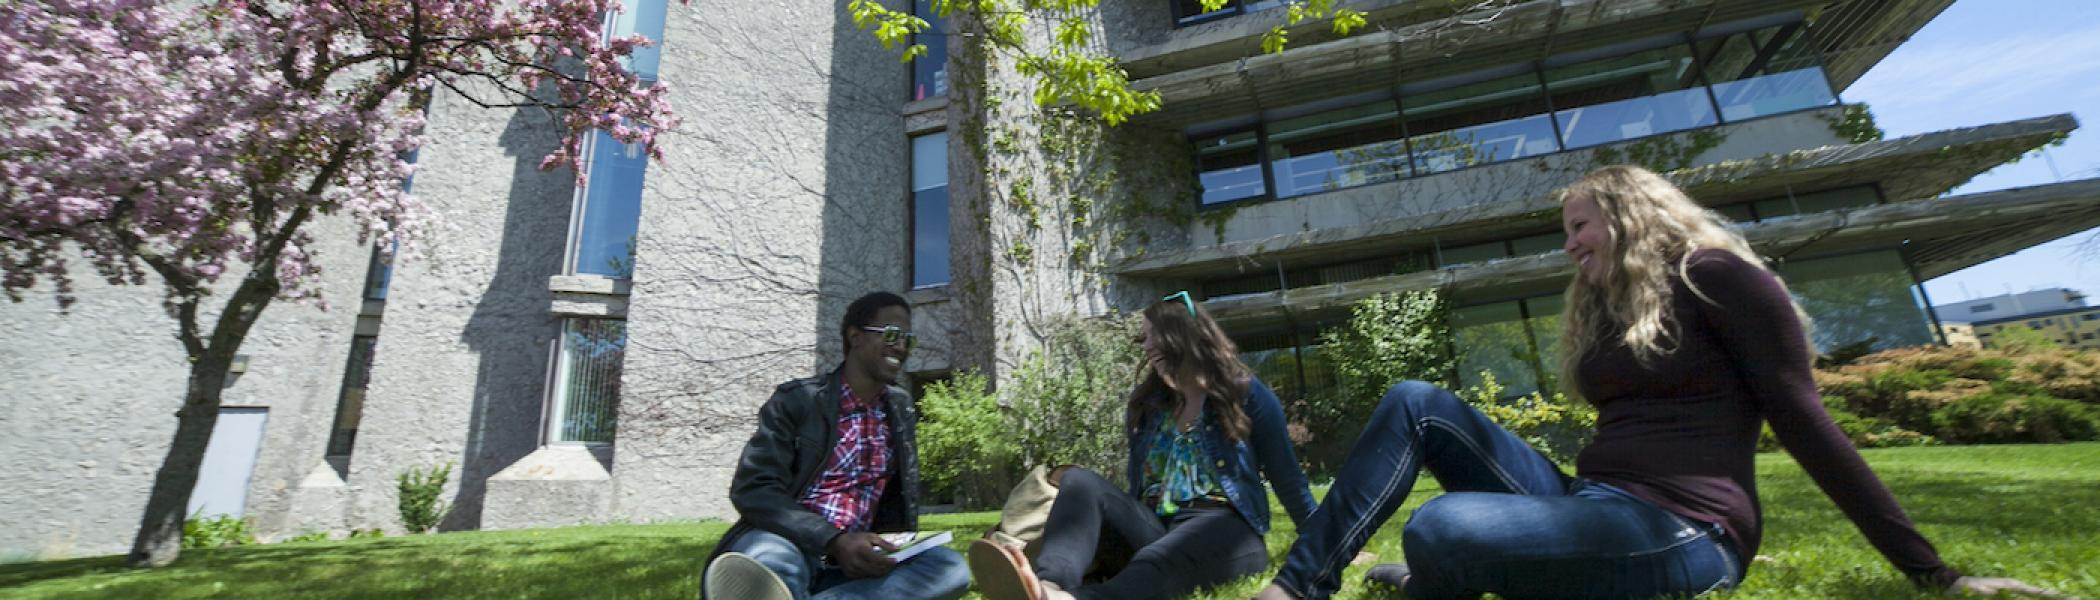 couple of student sitting and chatting in front of Bata Library on a sunny day